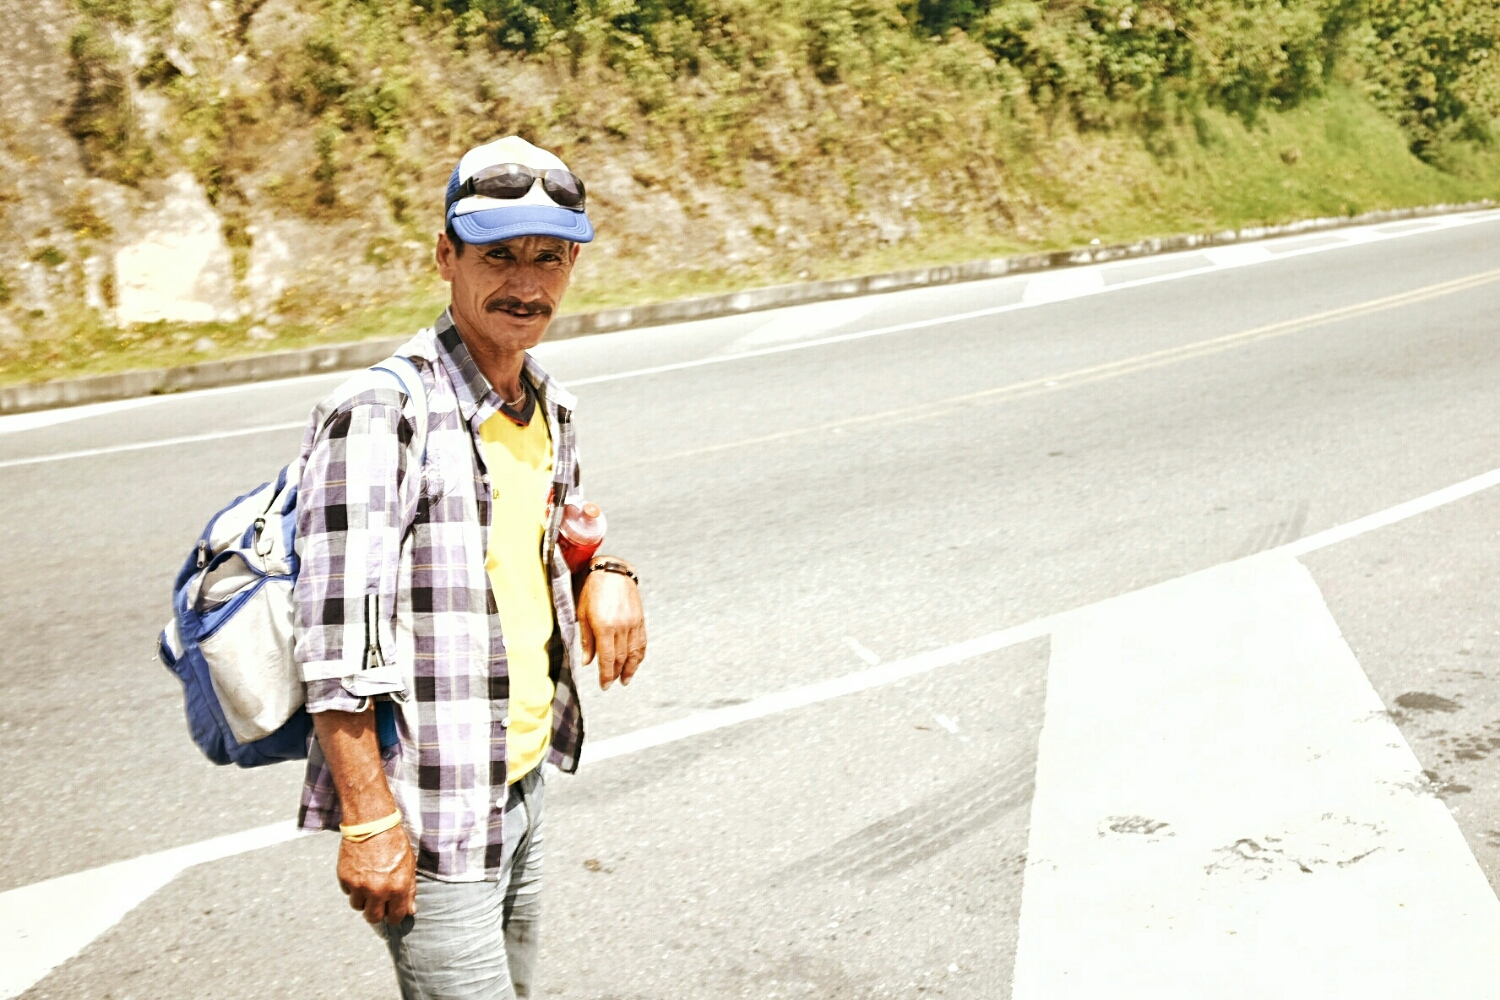 The walker. We met him while climbing from Manizales. He had walked for seven days from Armenia and was still more than 300 kilometers away from Bogotá, his destination. Hopefully you got there safely.